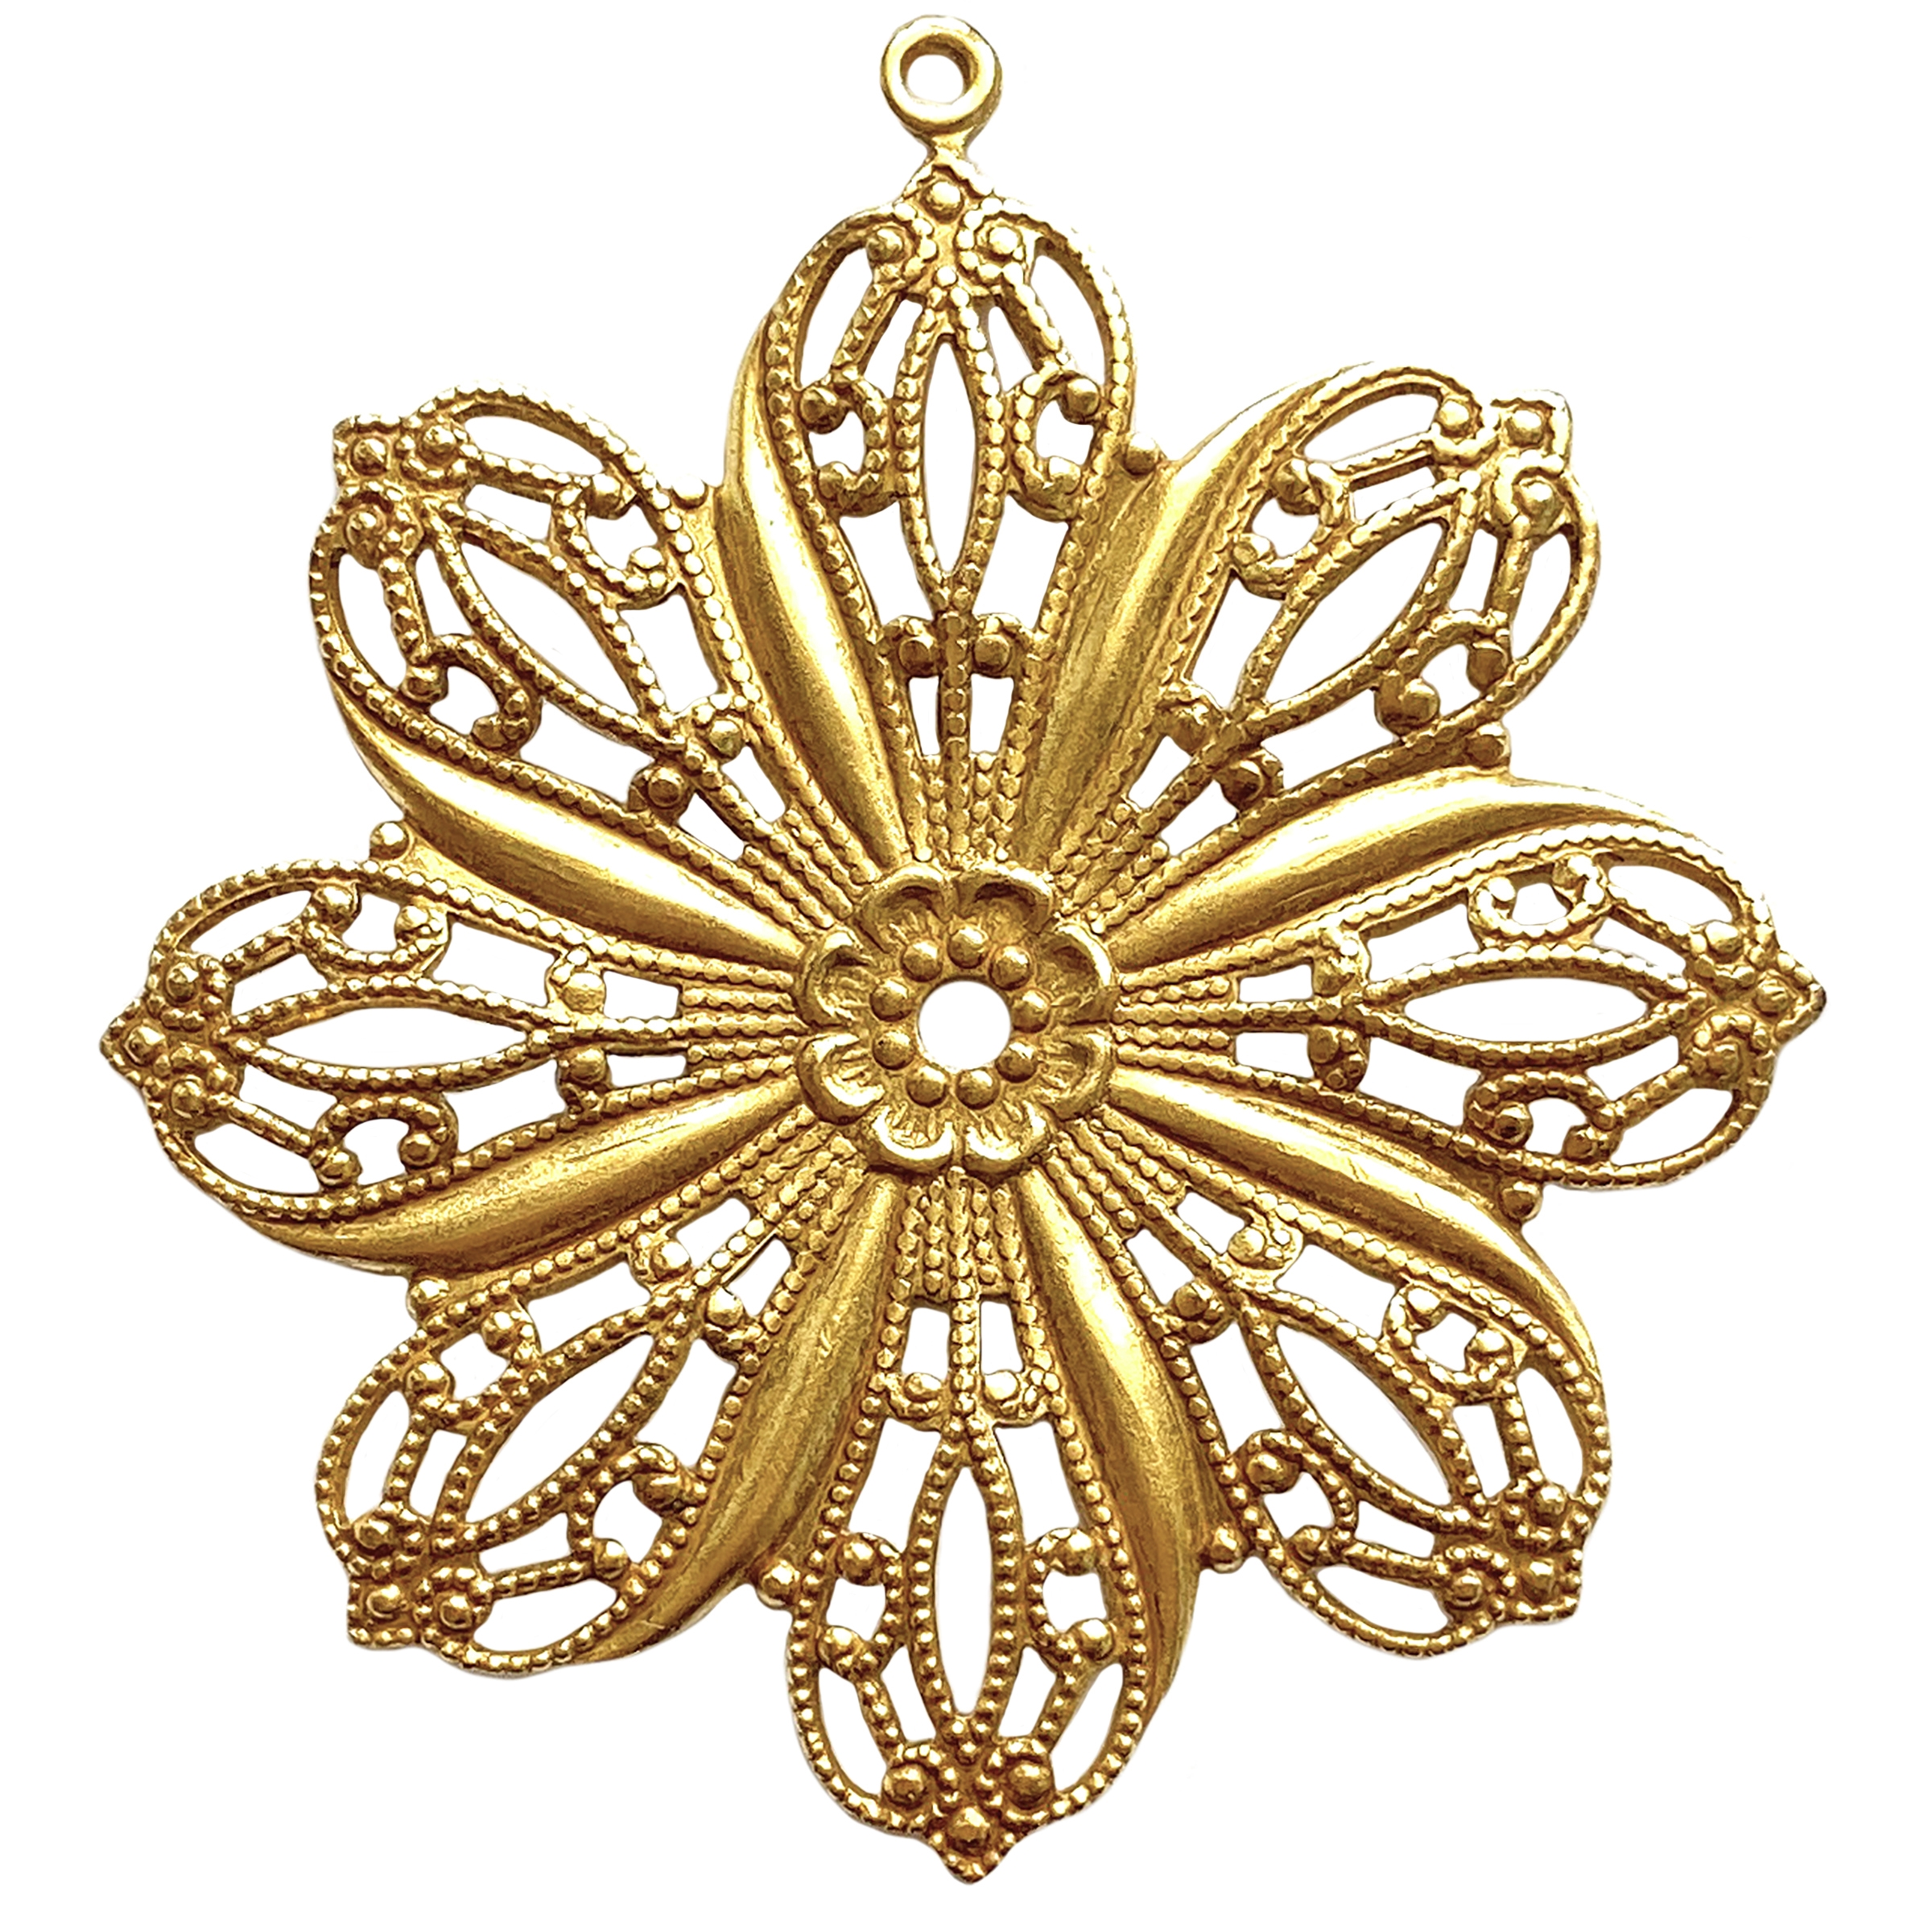 filigree flower pendant, classic gold, 01319, filigree, flower, pendant, gold pendant, floral, 46mm, gold plated, filigree pendant